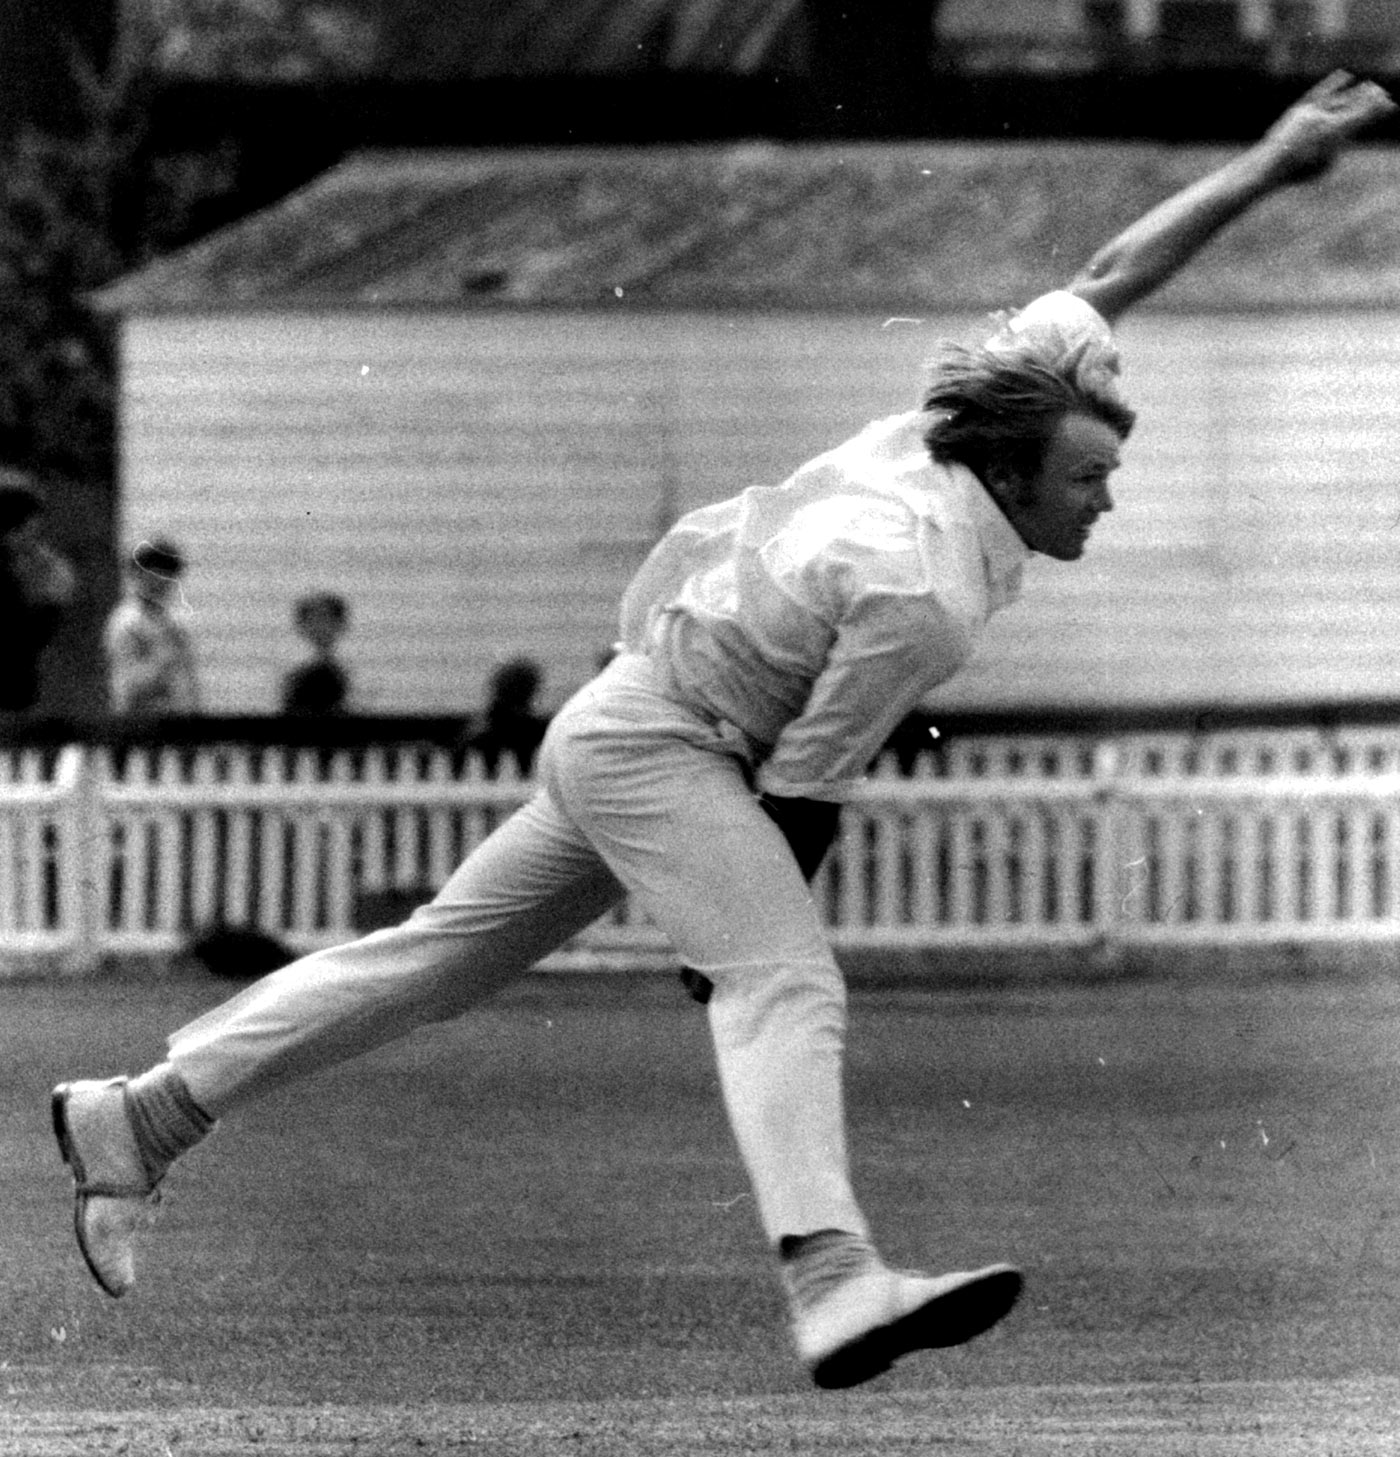 Wind in his hair, hostility in his stride, Mike Procter steams in to bowl